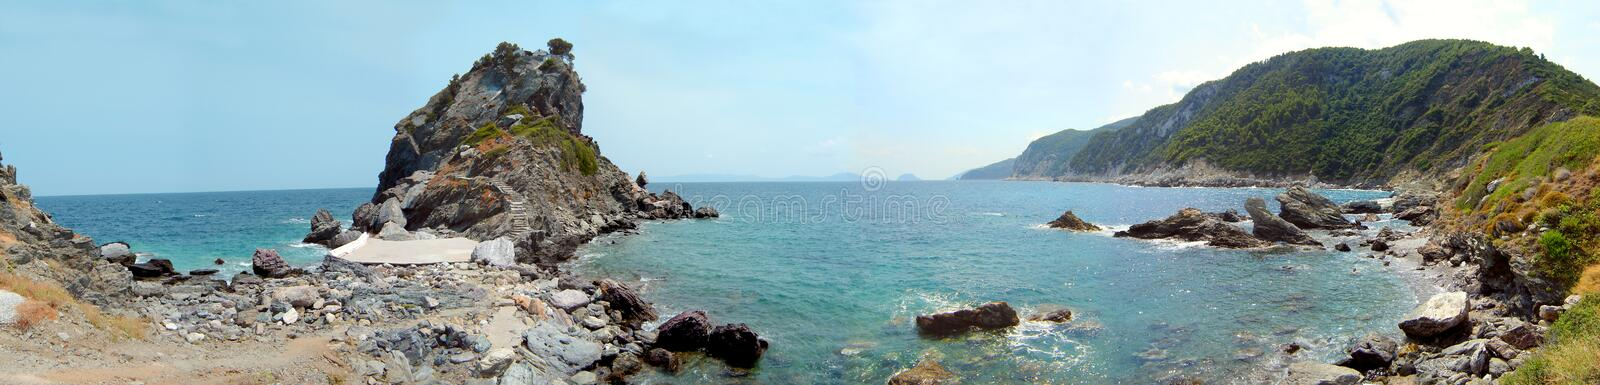 Agio Ioanis beach_Scopelos Island_Greece stockfotos